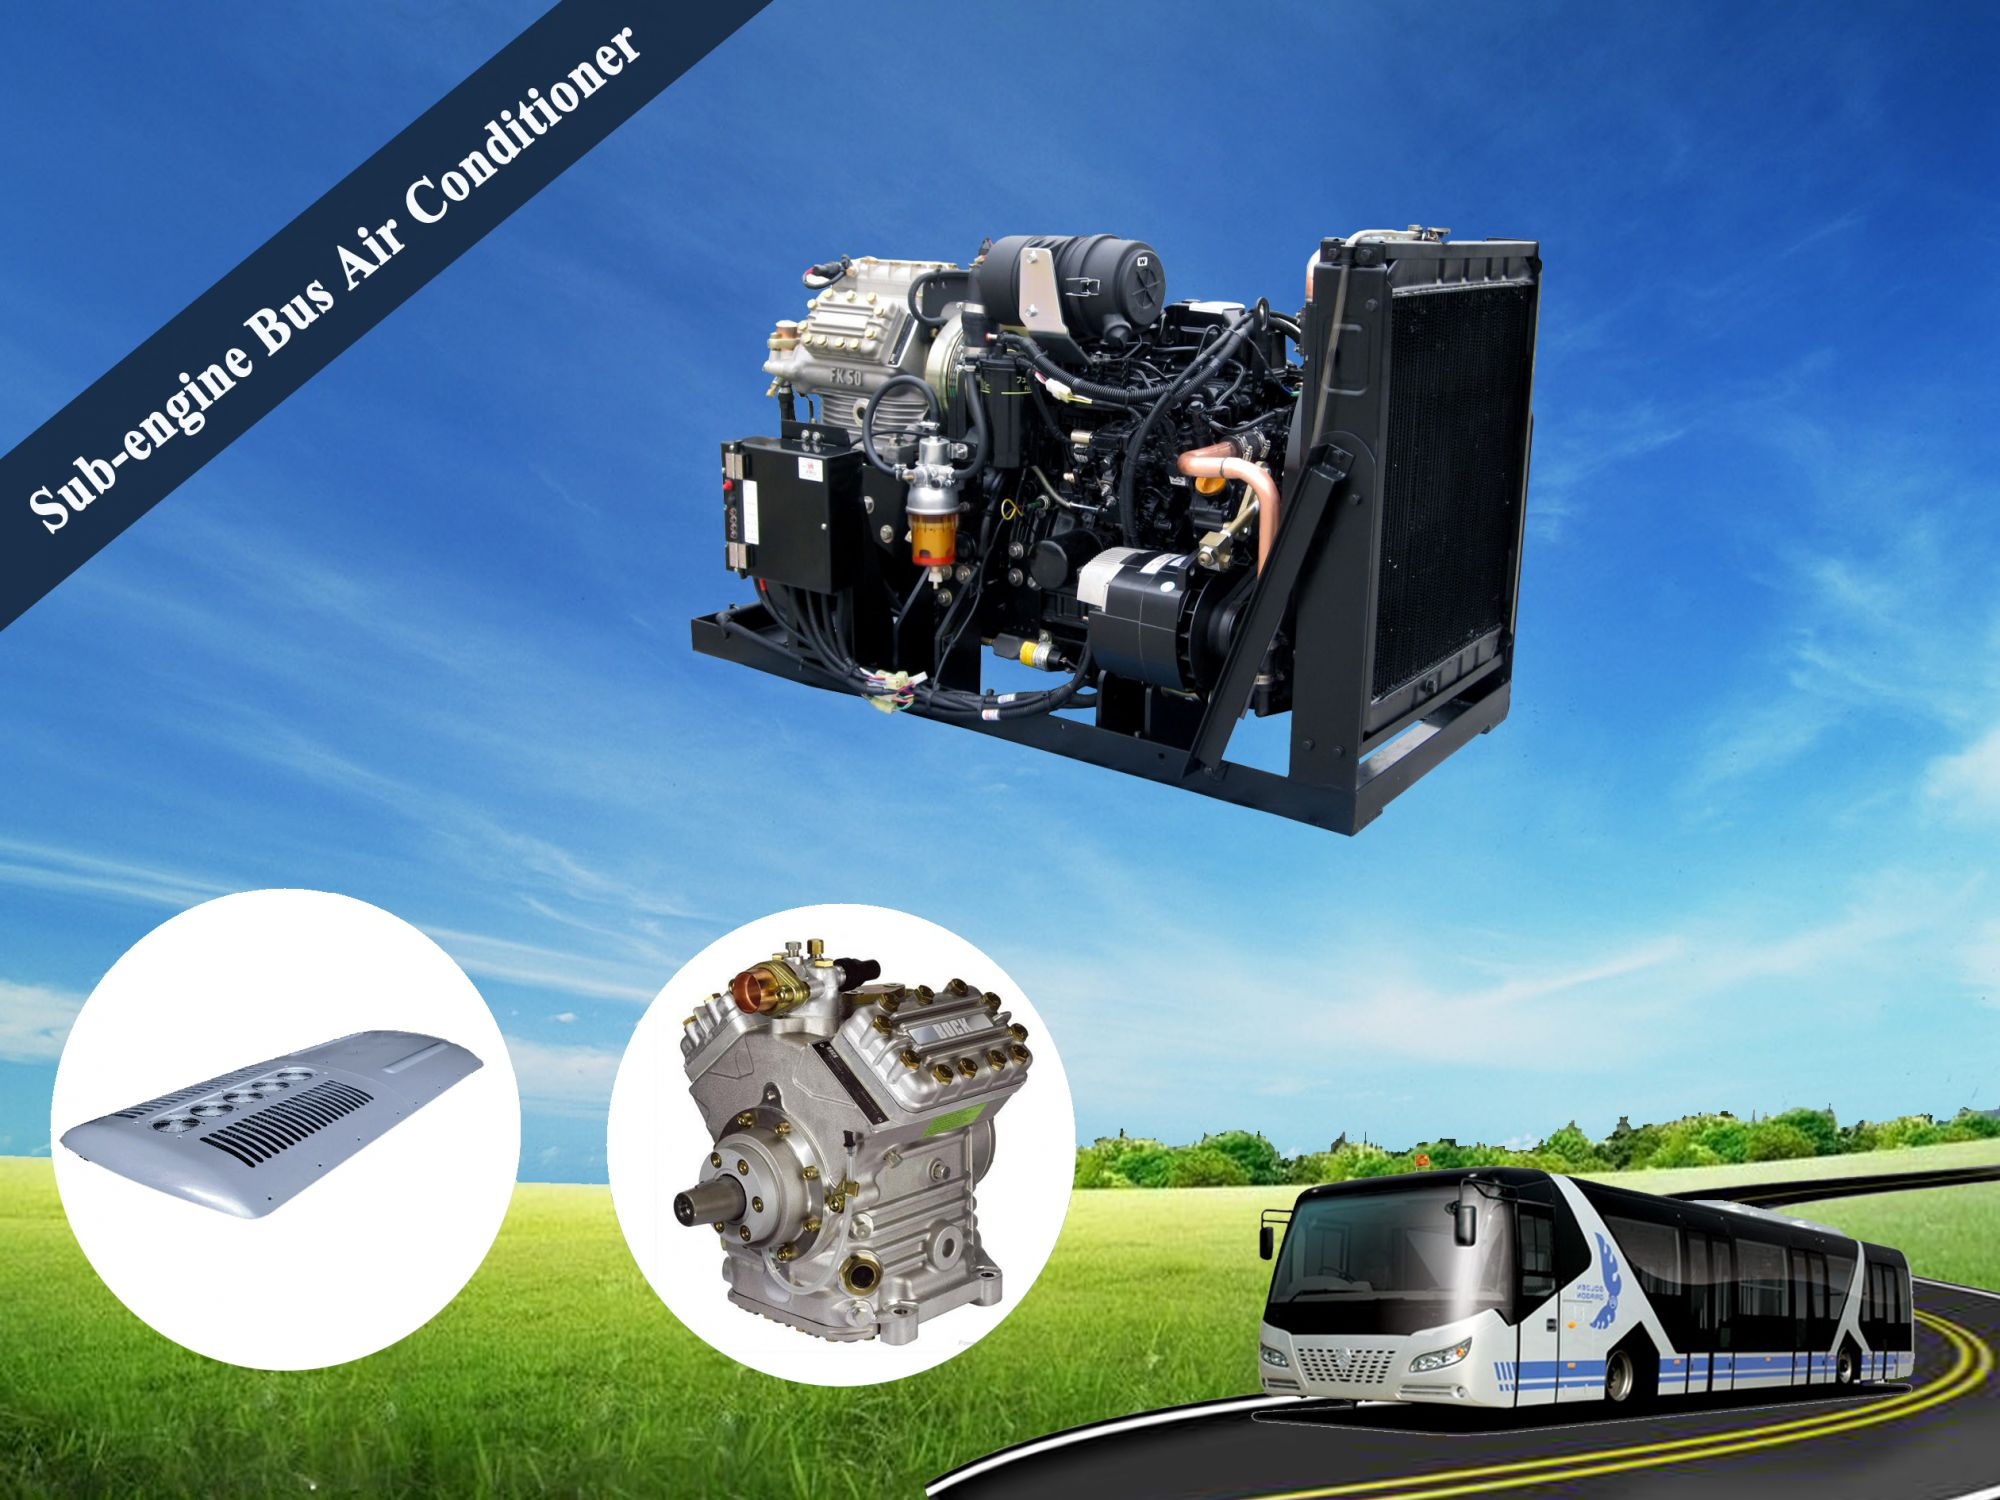 Sub-engine Bus Air Conditioner